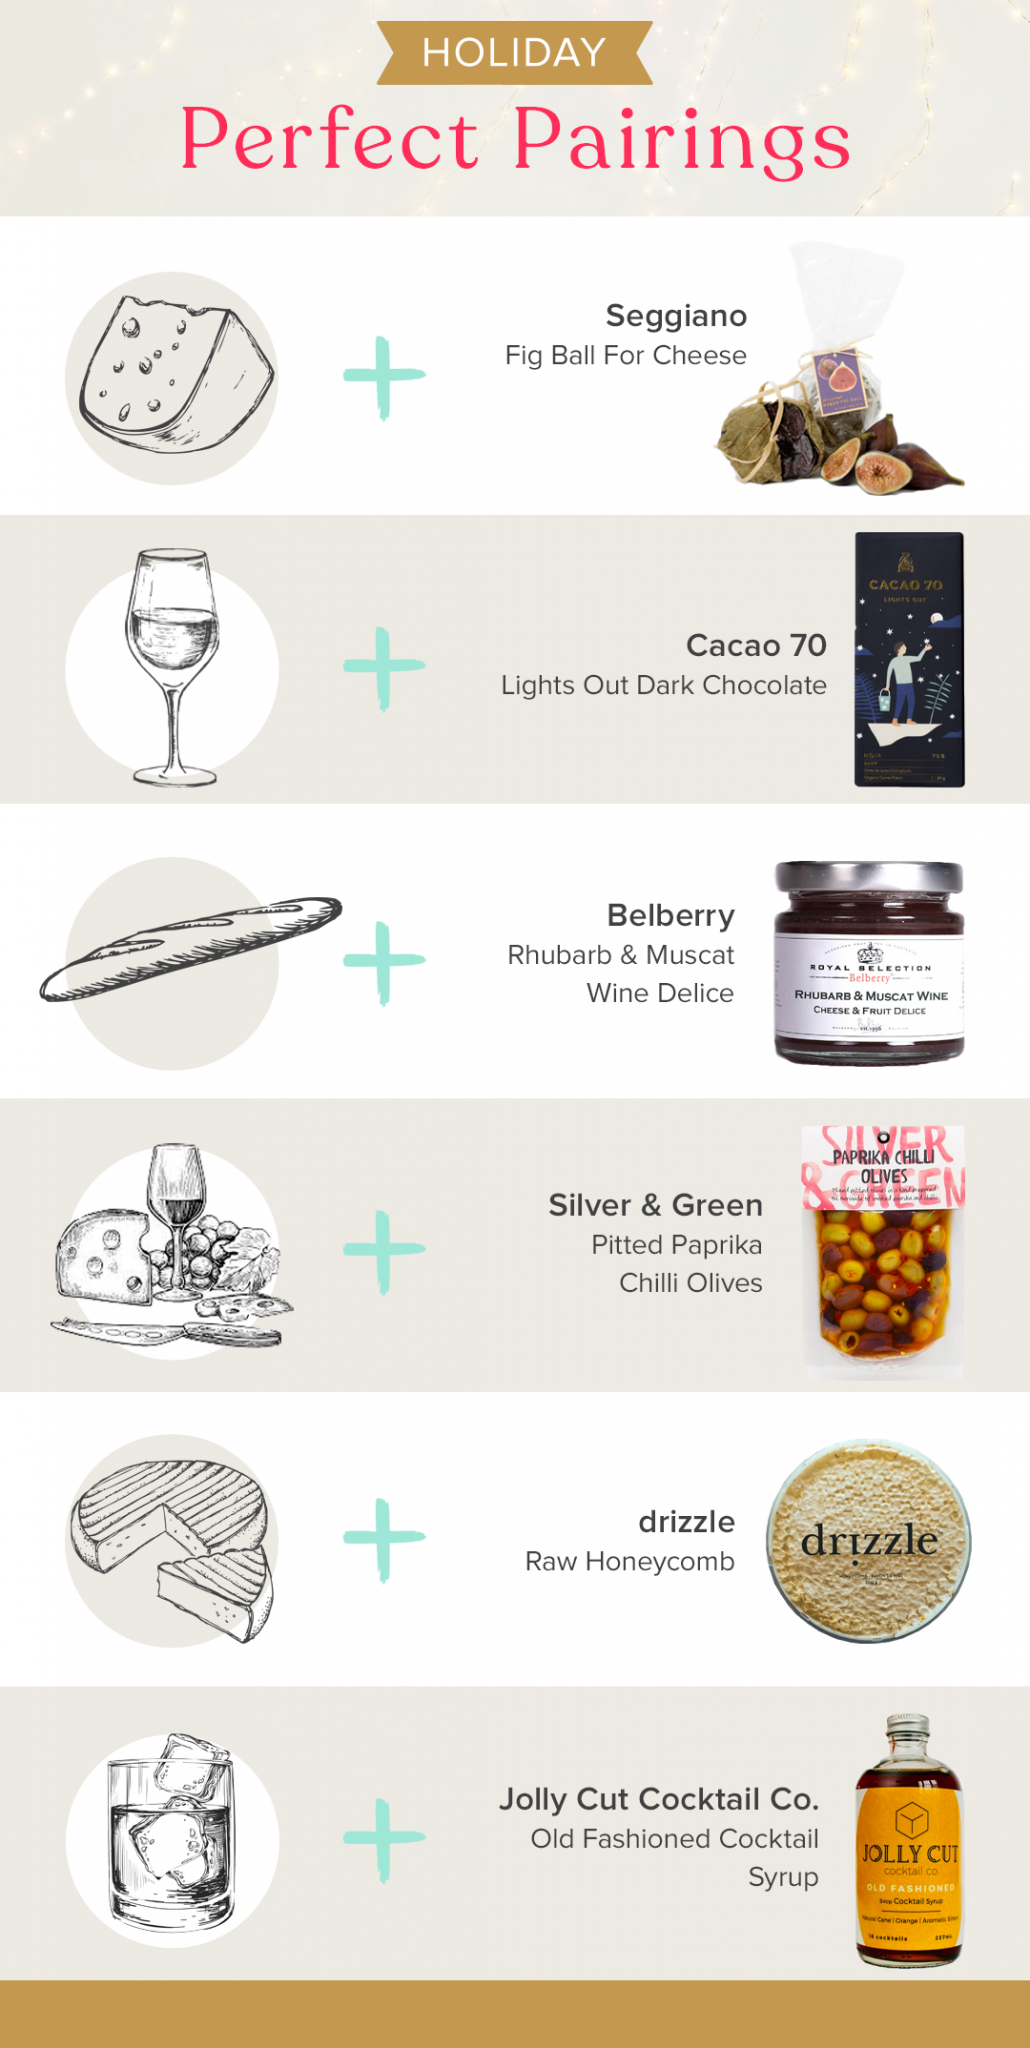 Holiday Perfect Pairings for Entertaining